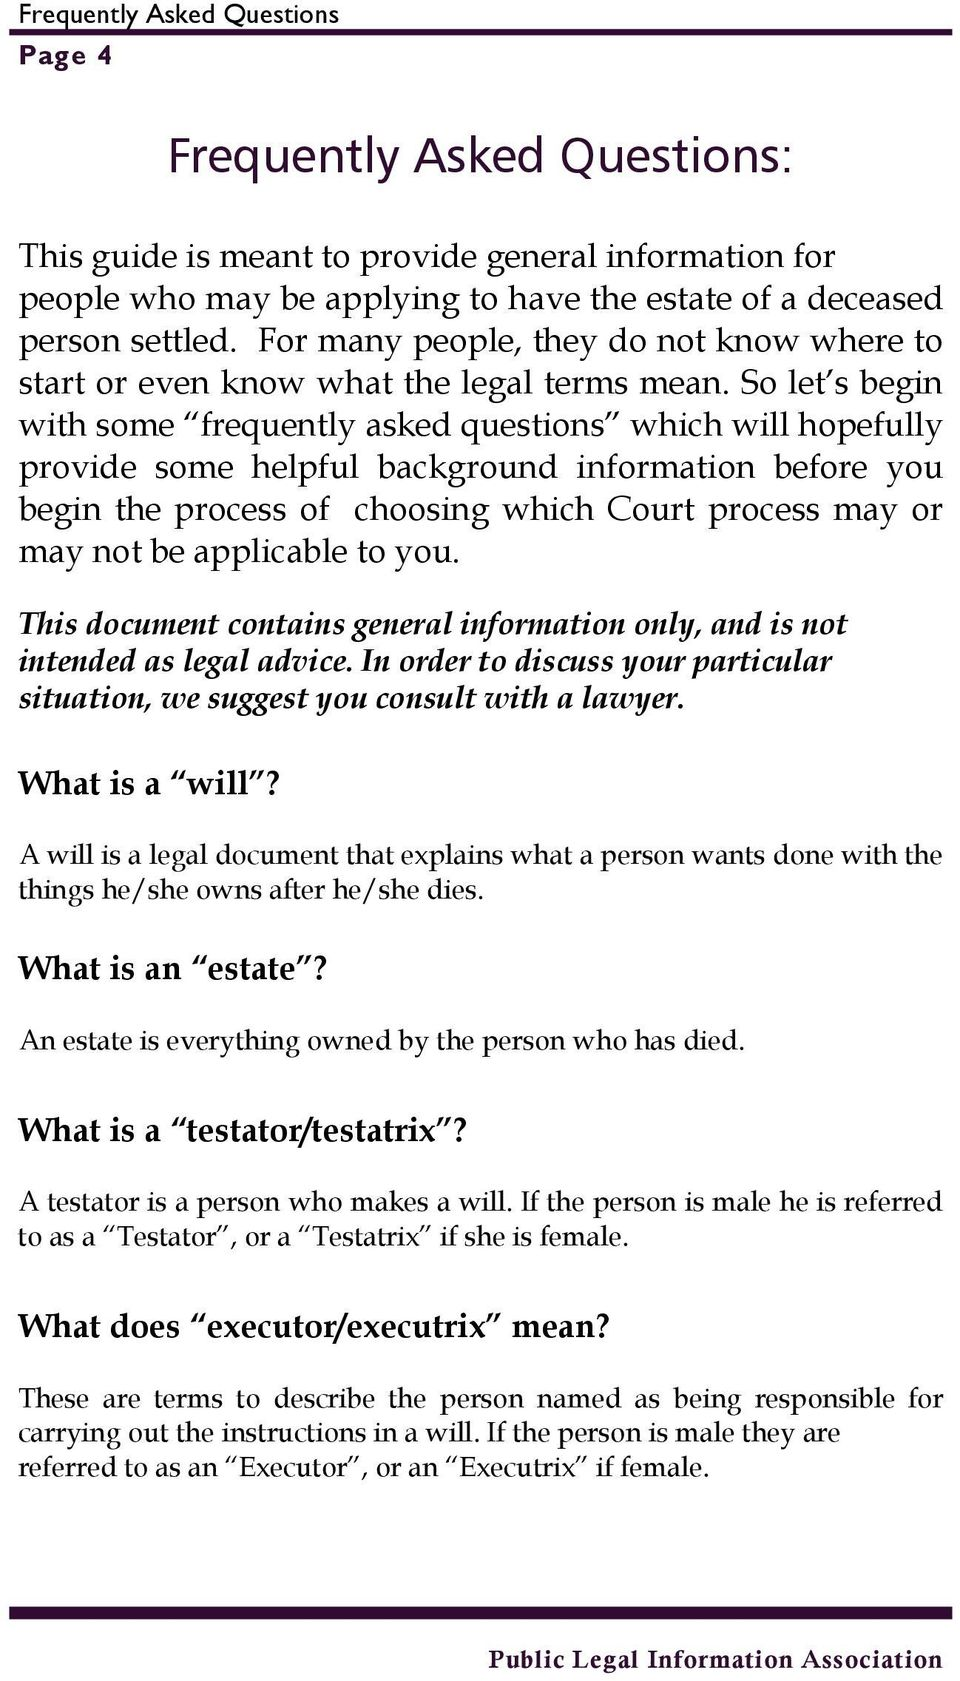 So let s begin with some frequently asked questions which will hopefully provide some helpful background information before you begin the process of choosing which Court process may or may not be